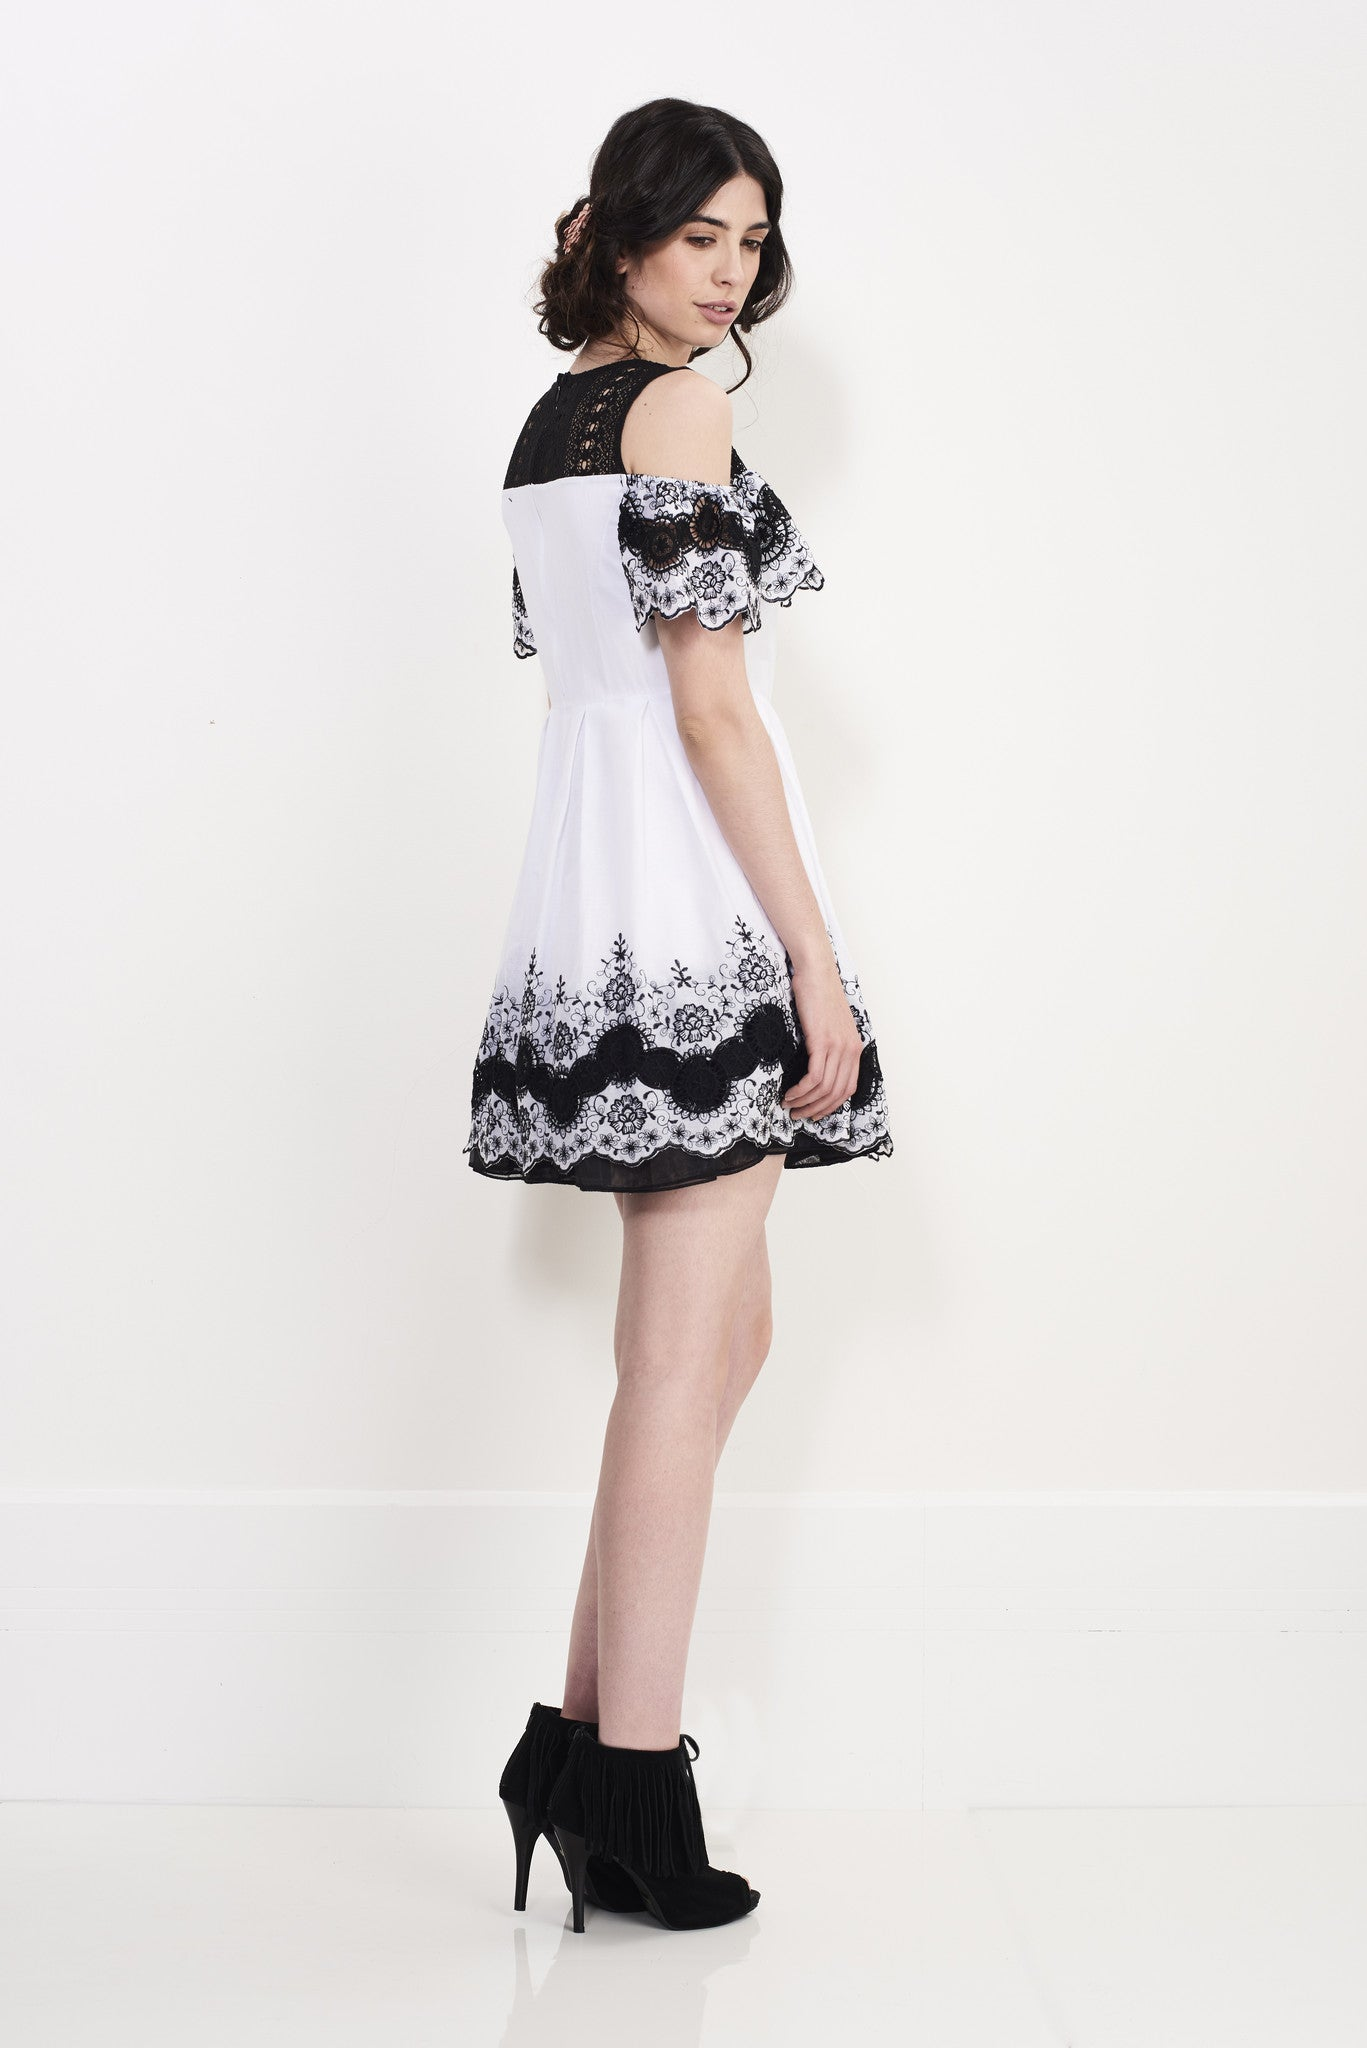 WHEEL EMBROIDERY DRESS - Darccy & Soma London